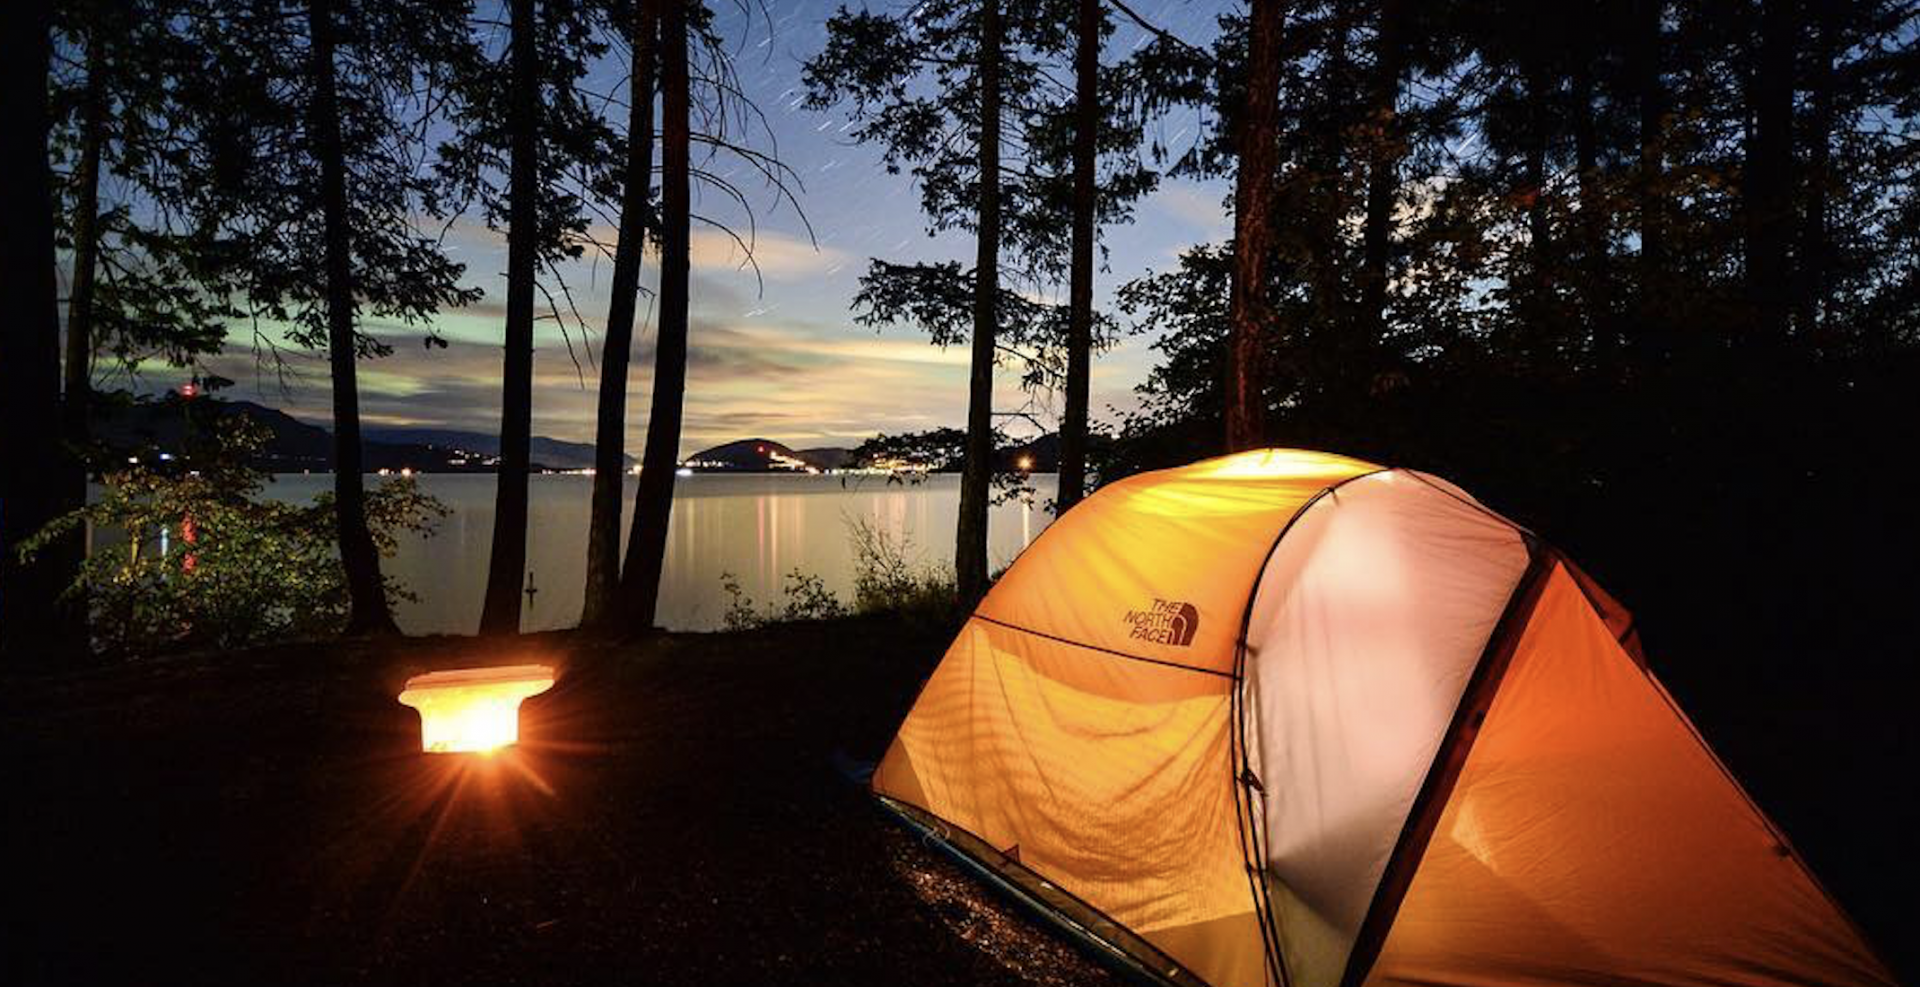 BC plans to reopen most provincial campgrounds next month